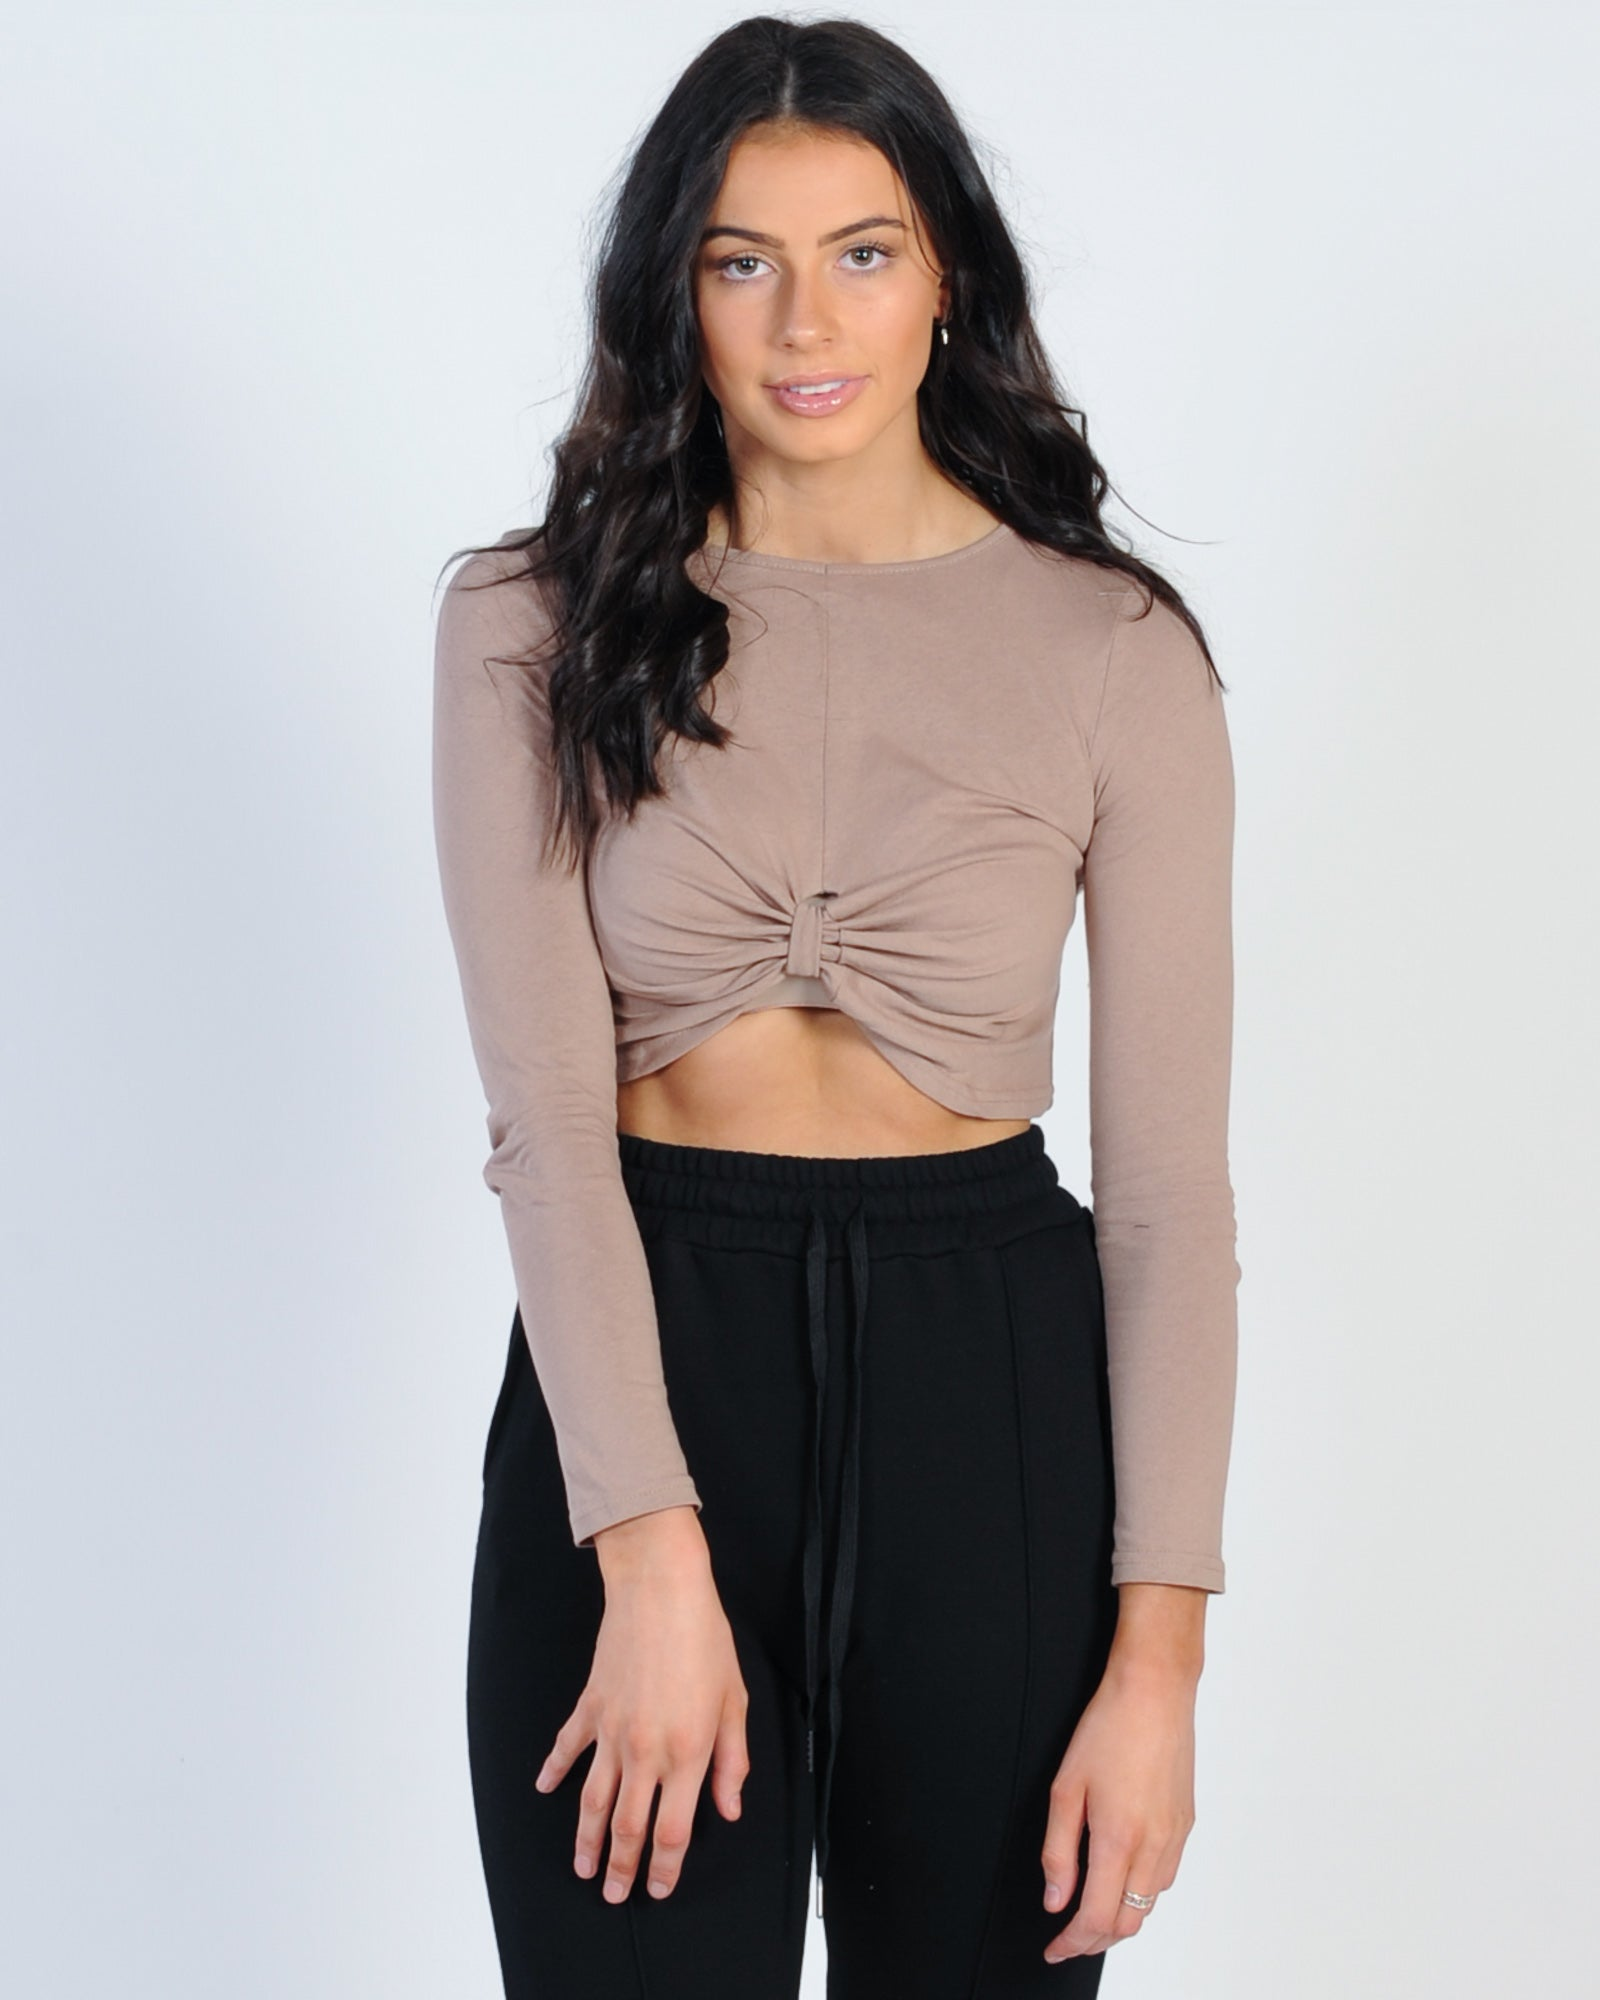 Bevery Hills Knot Top - Tan